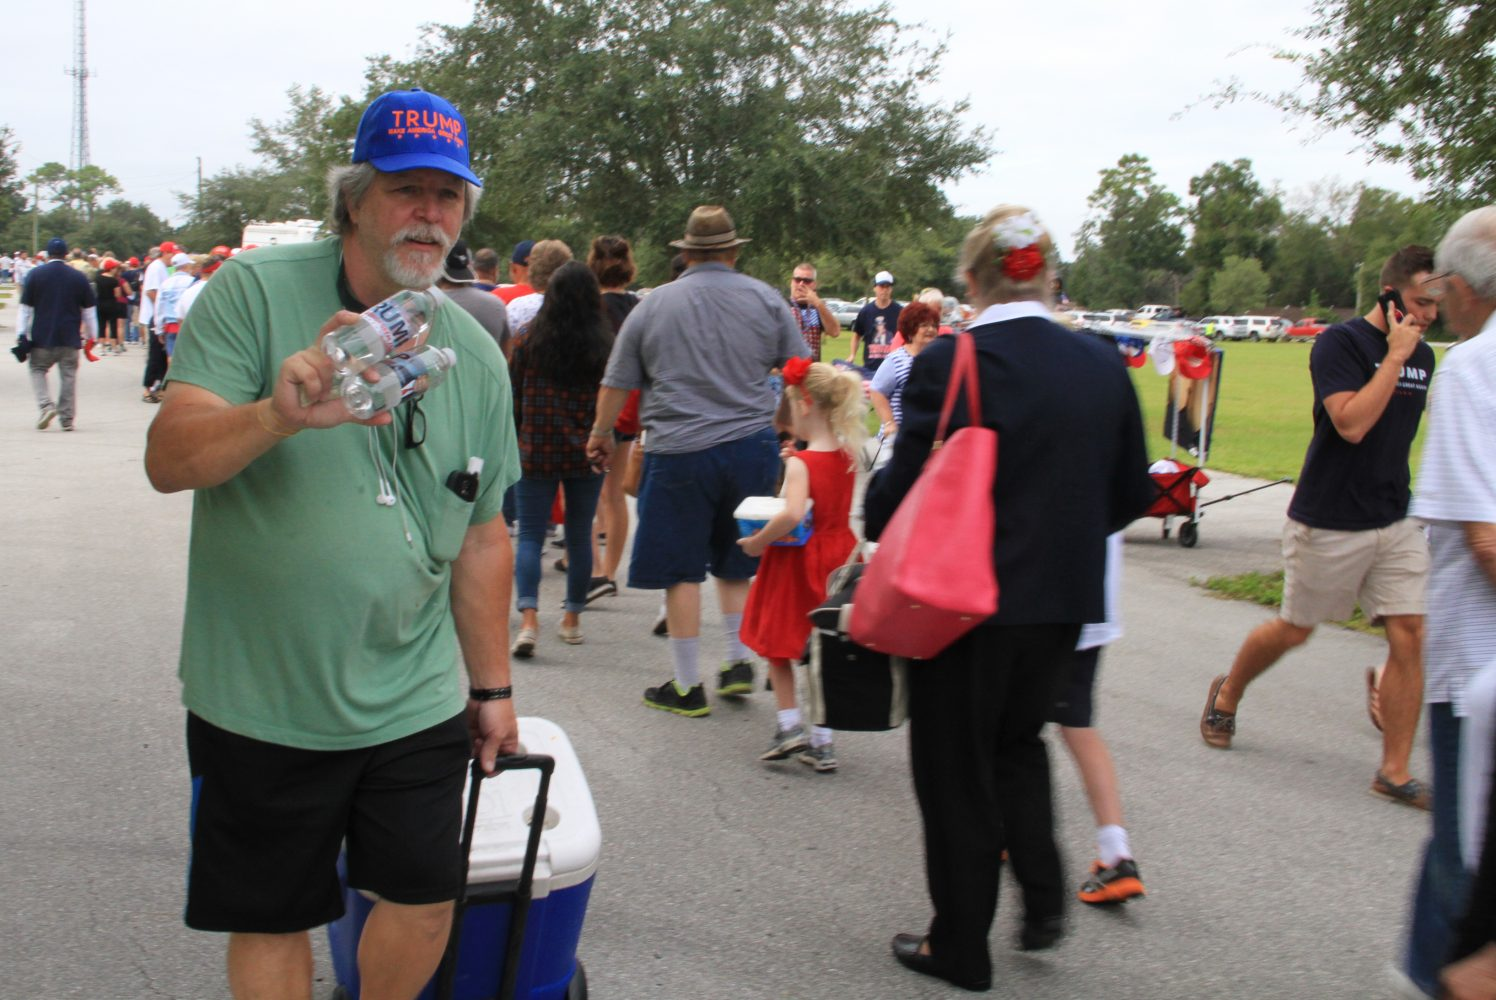 A man, who chose to be identified as Mike Campaign HQ, sells bottles of water to people waiting in line to see Donald Trump on Wednesday morning. The line to get into the event began to form before 7 a.m., and people continued to enter the venue until after 2 p.m.